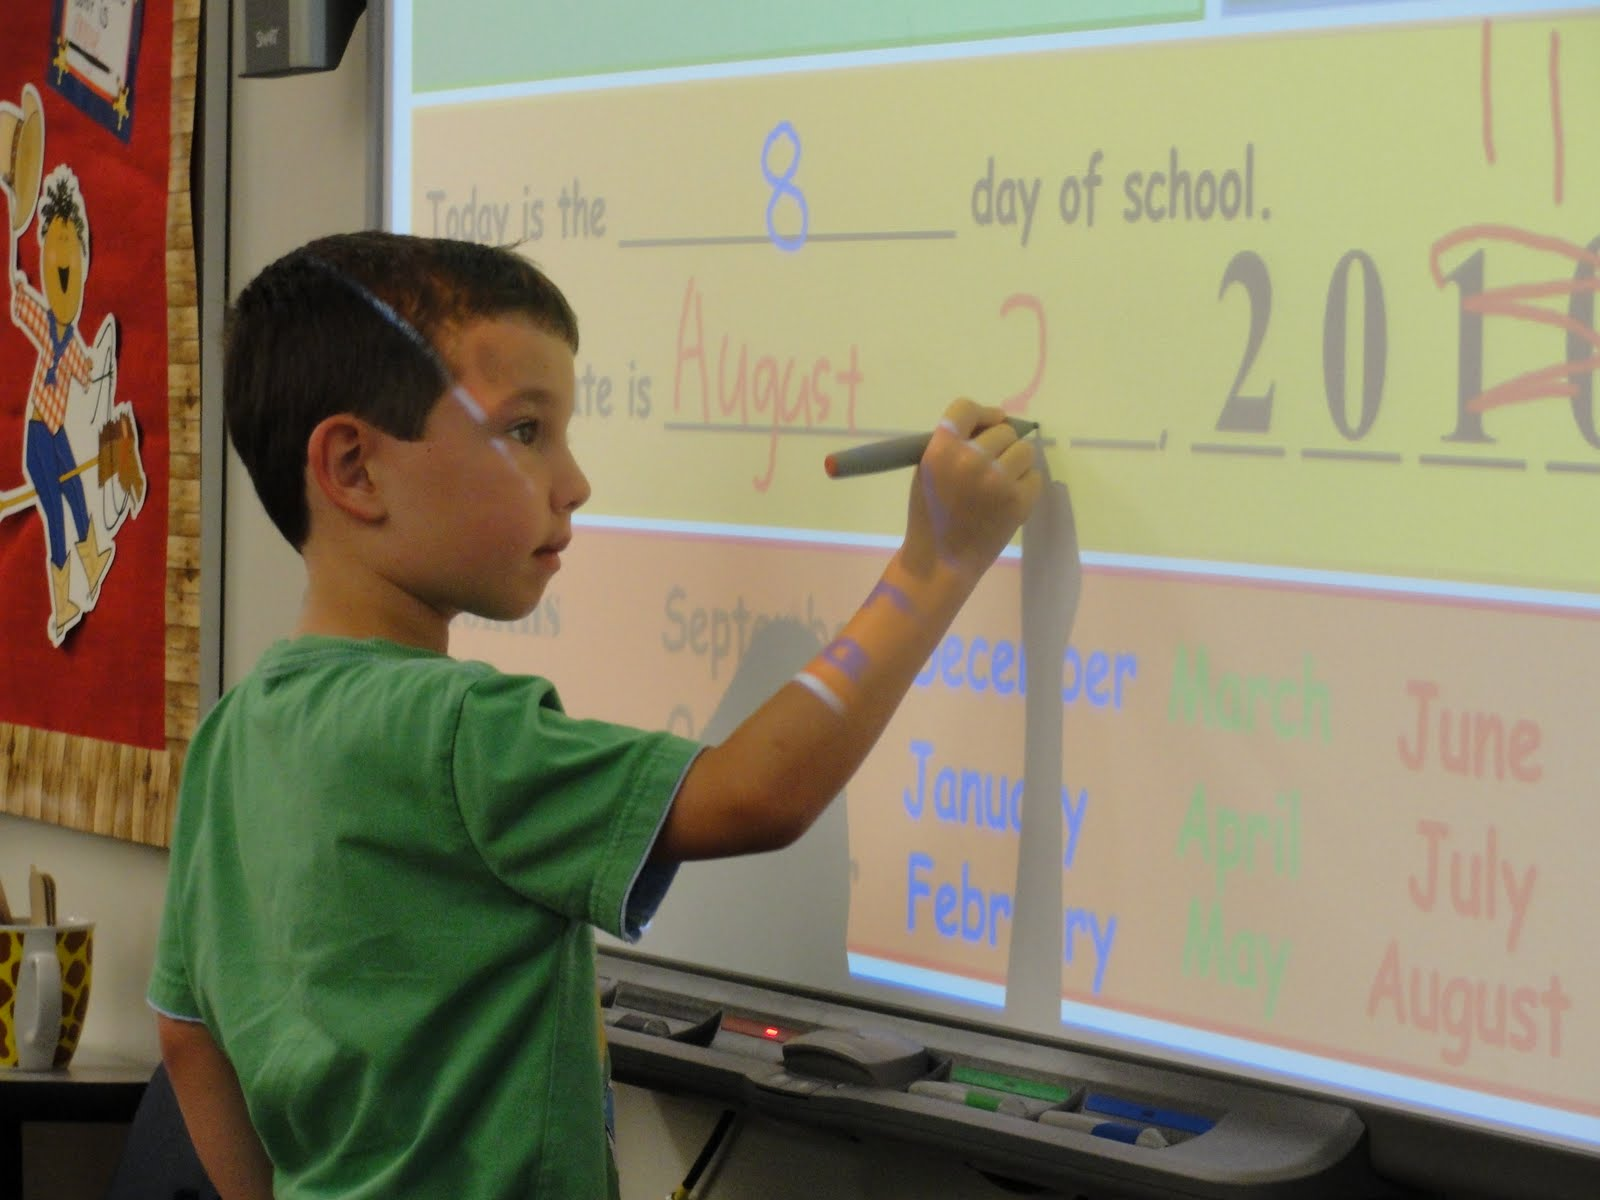 Lawson's turn at the Smart Board arrived when his name stick was ...